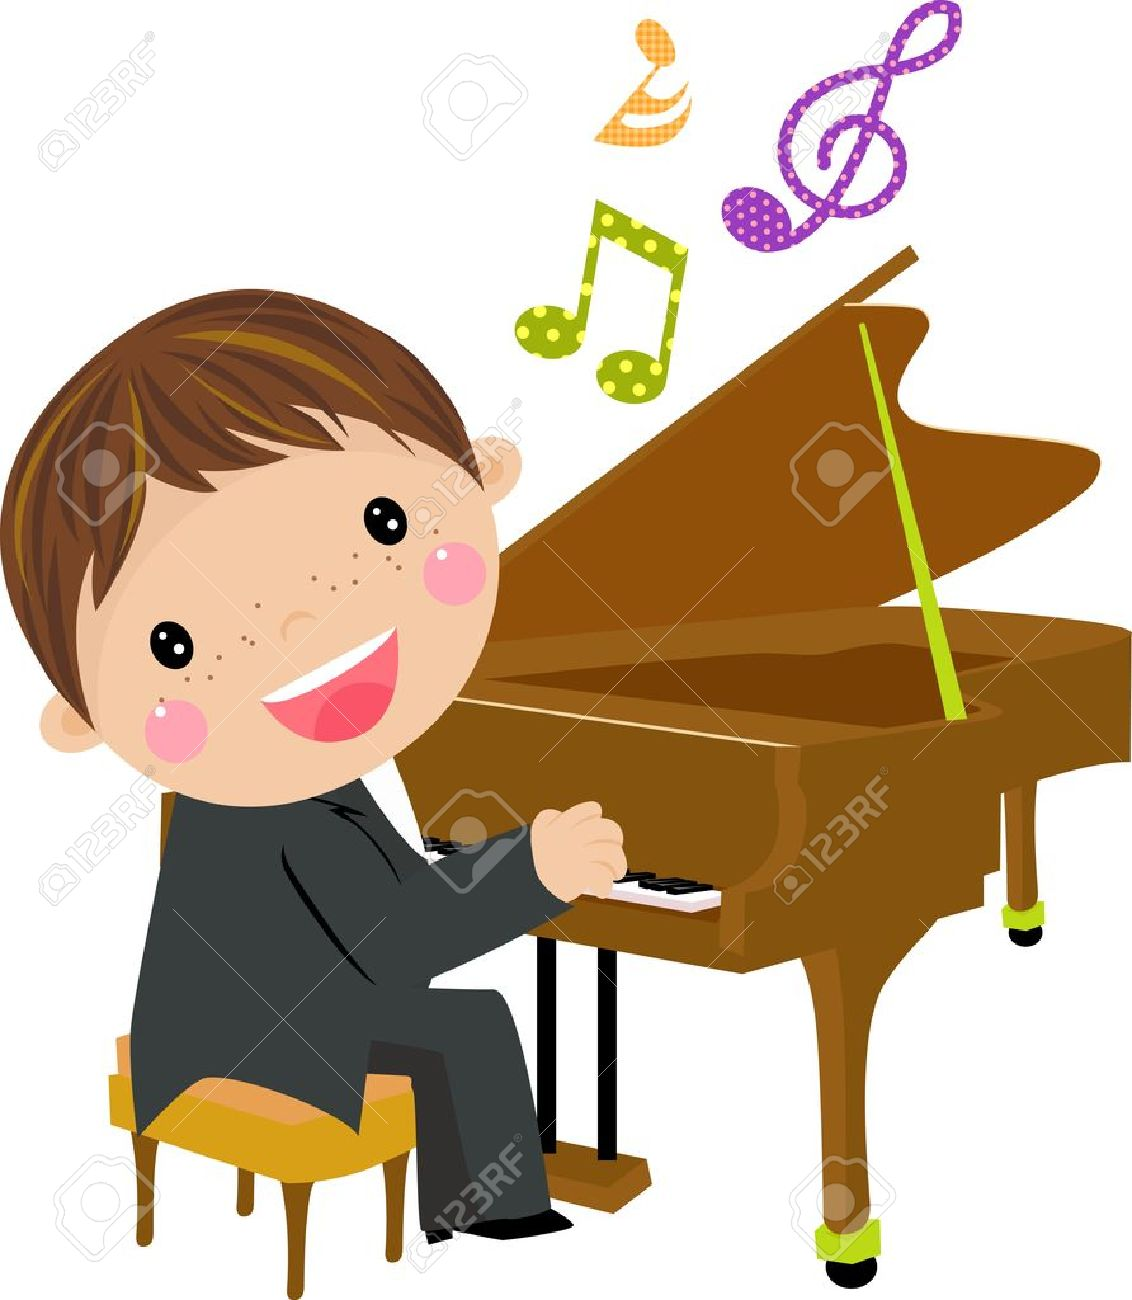 Todd Clipart 20 Fee Cliparts Download Imagenes: Practice Piano Clipart 20 Free Cliparts